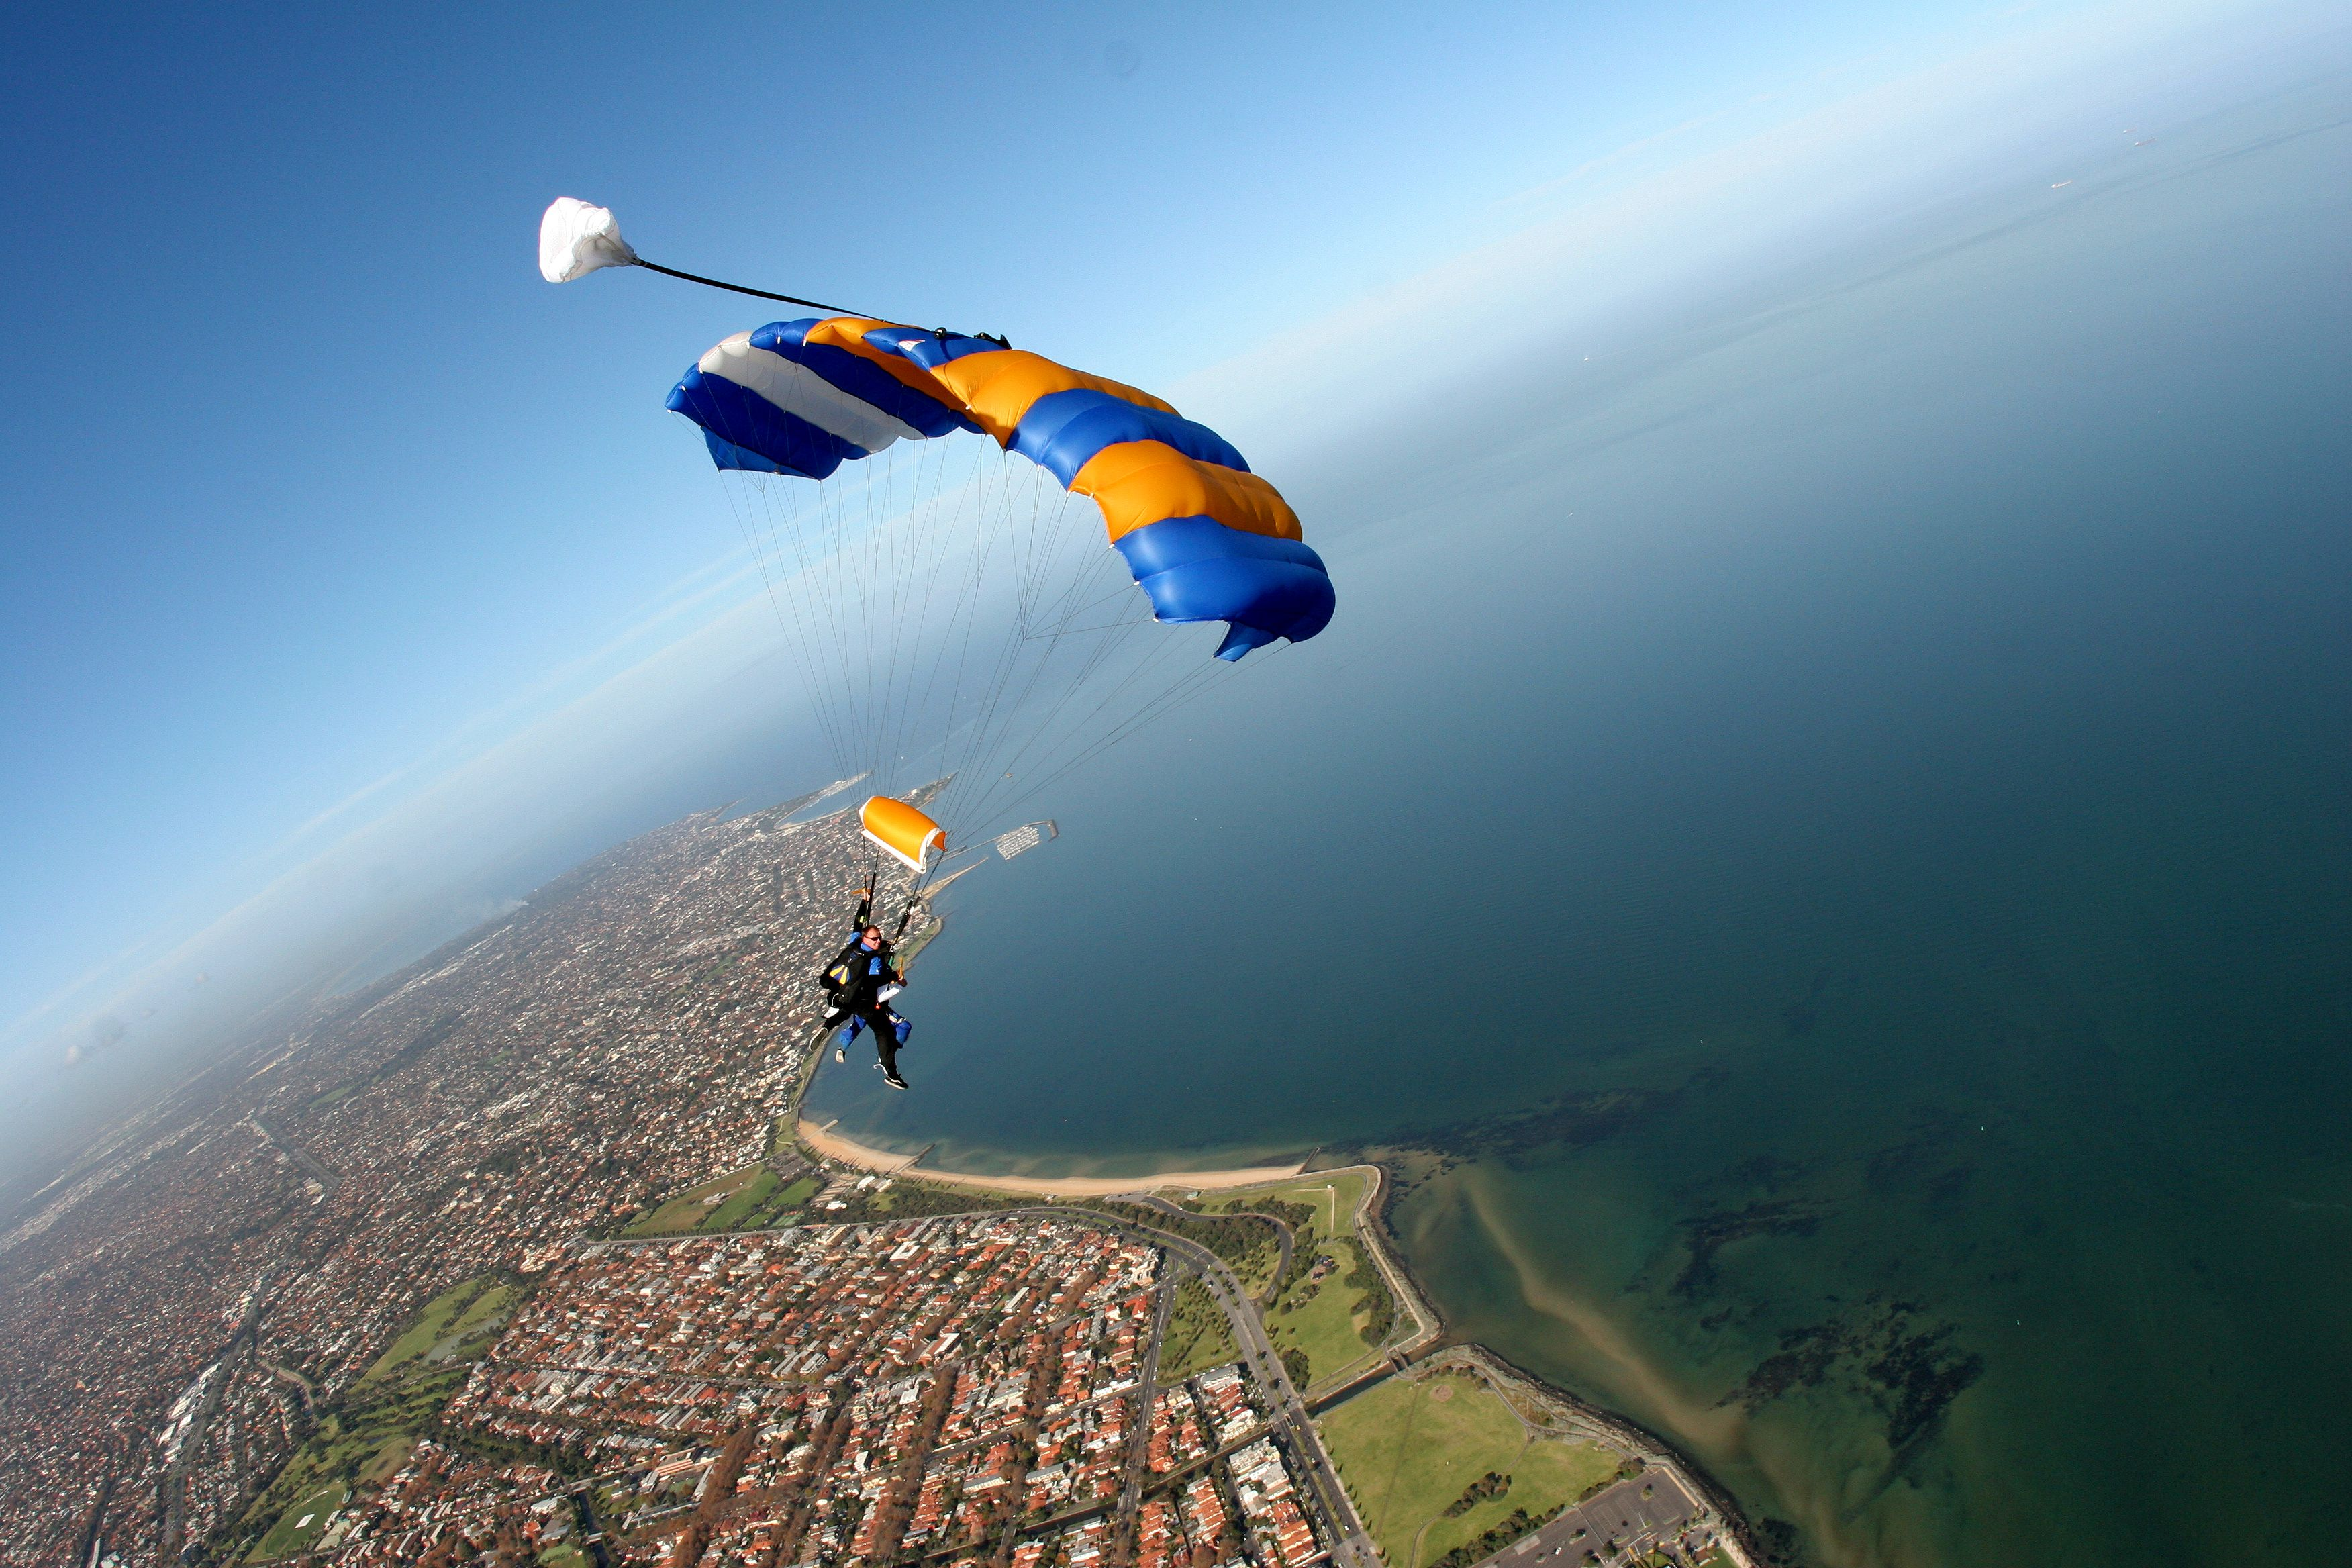 Katie and Cody taking in the views over St Kilda #melbourne #skydive